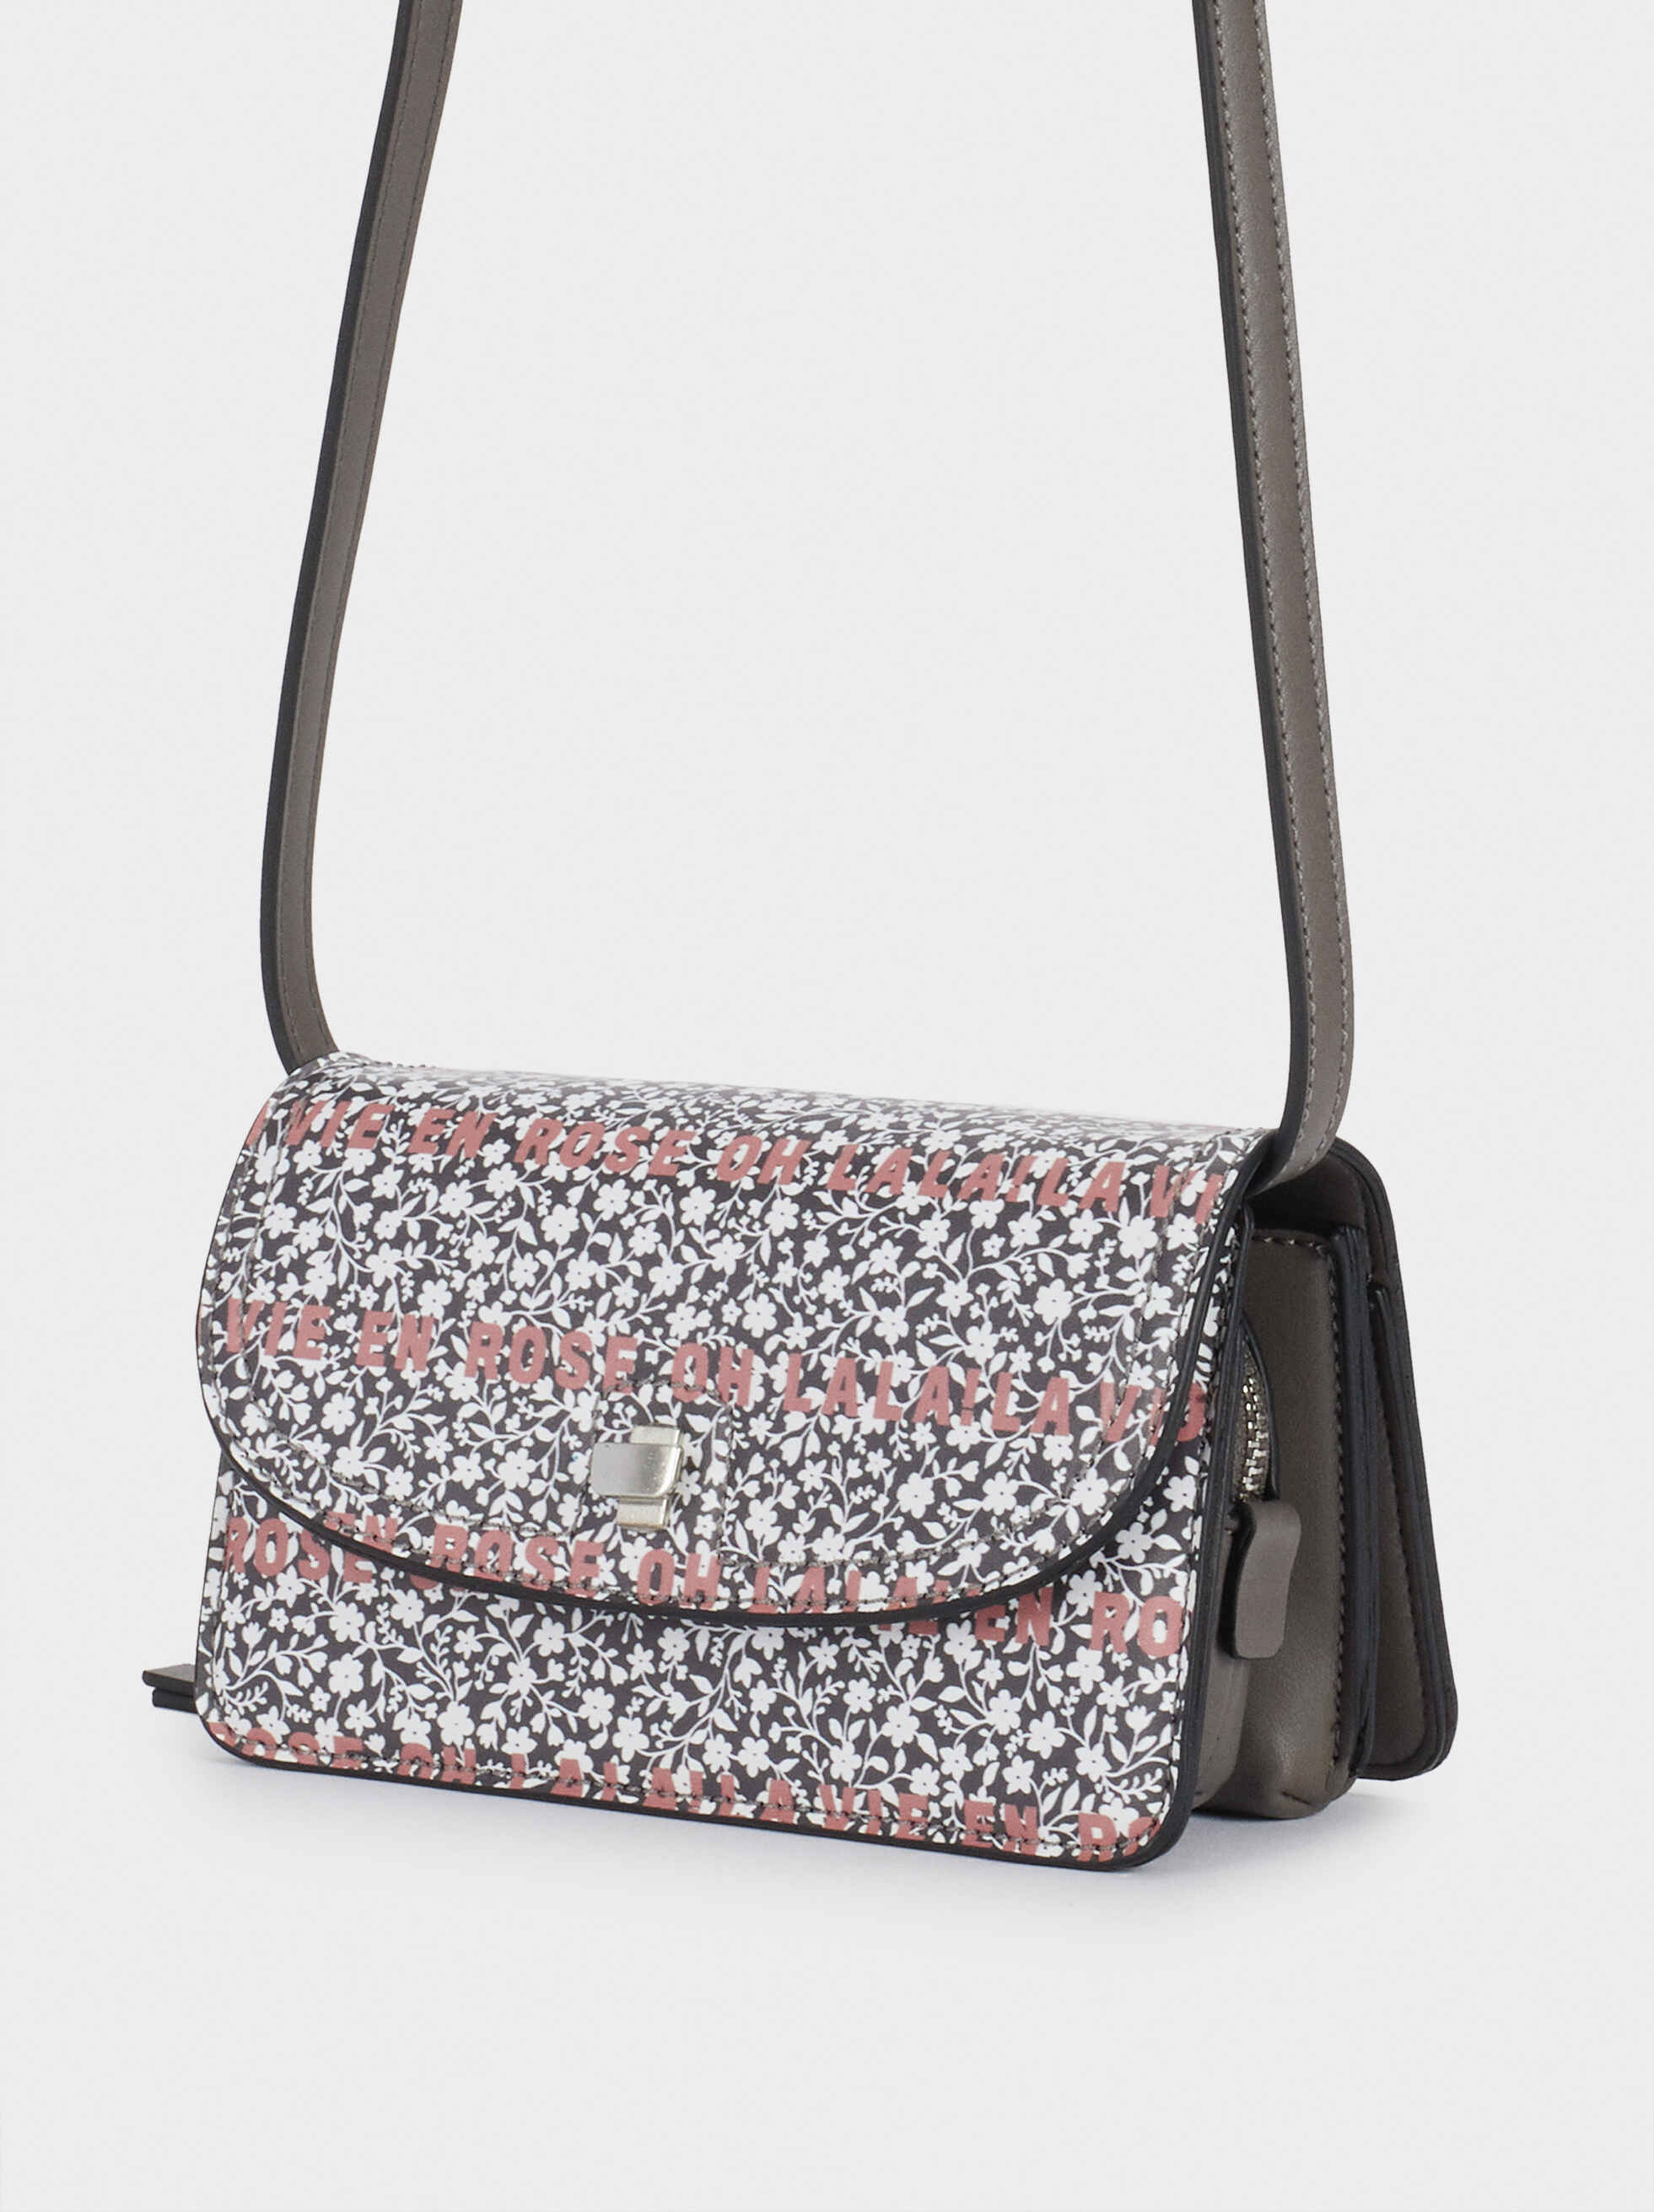 Purse With Crossbody Strap, Grey, hi-res